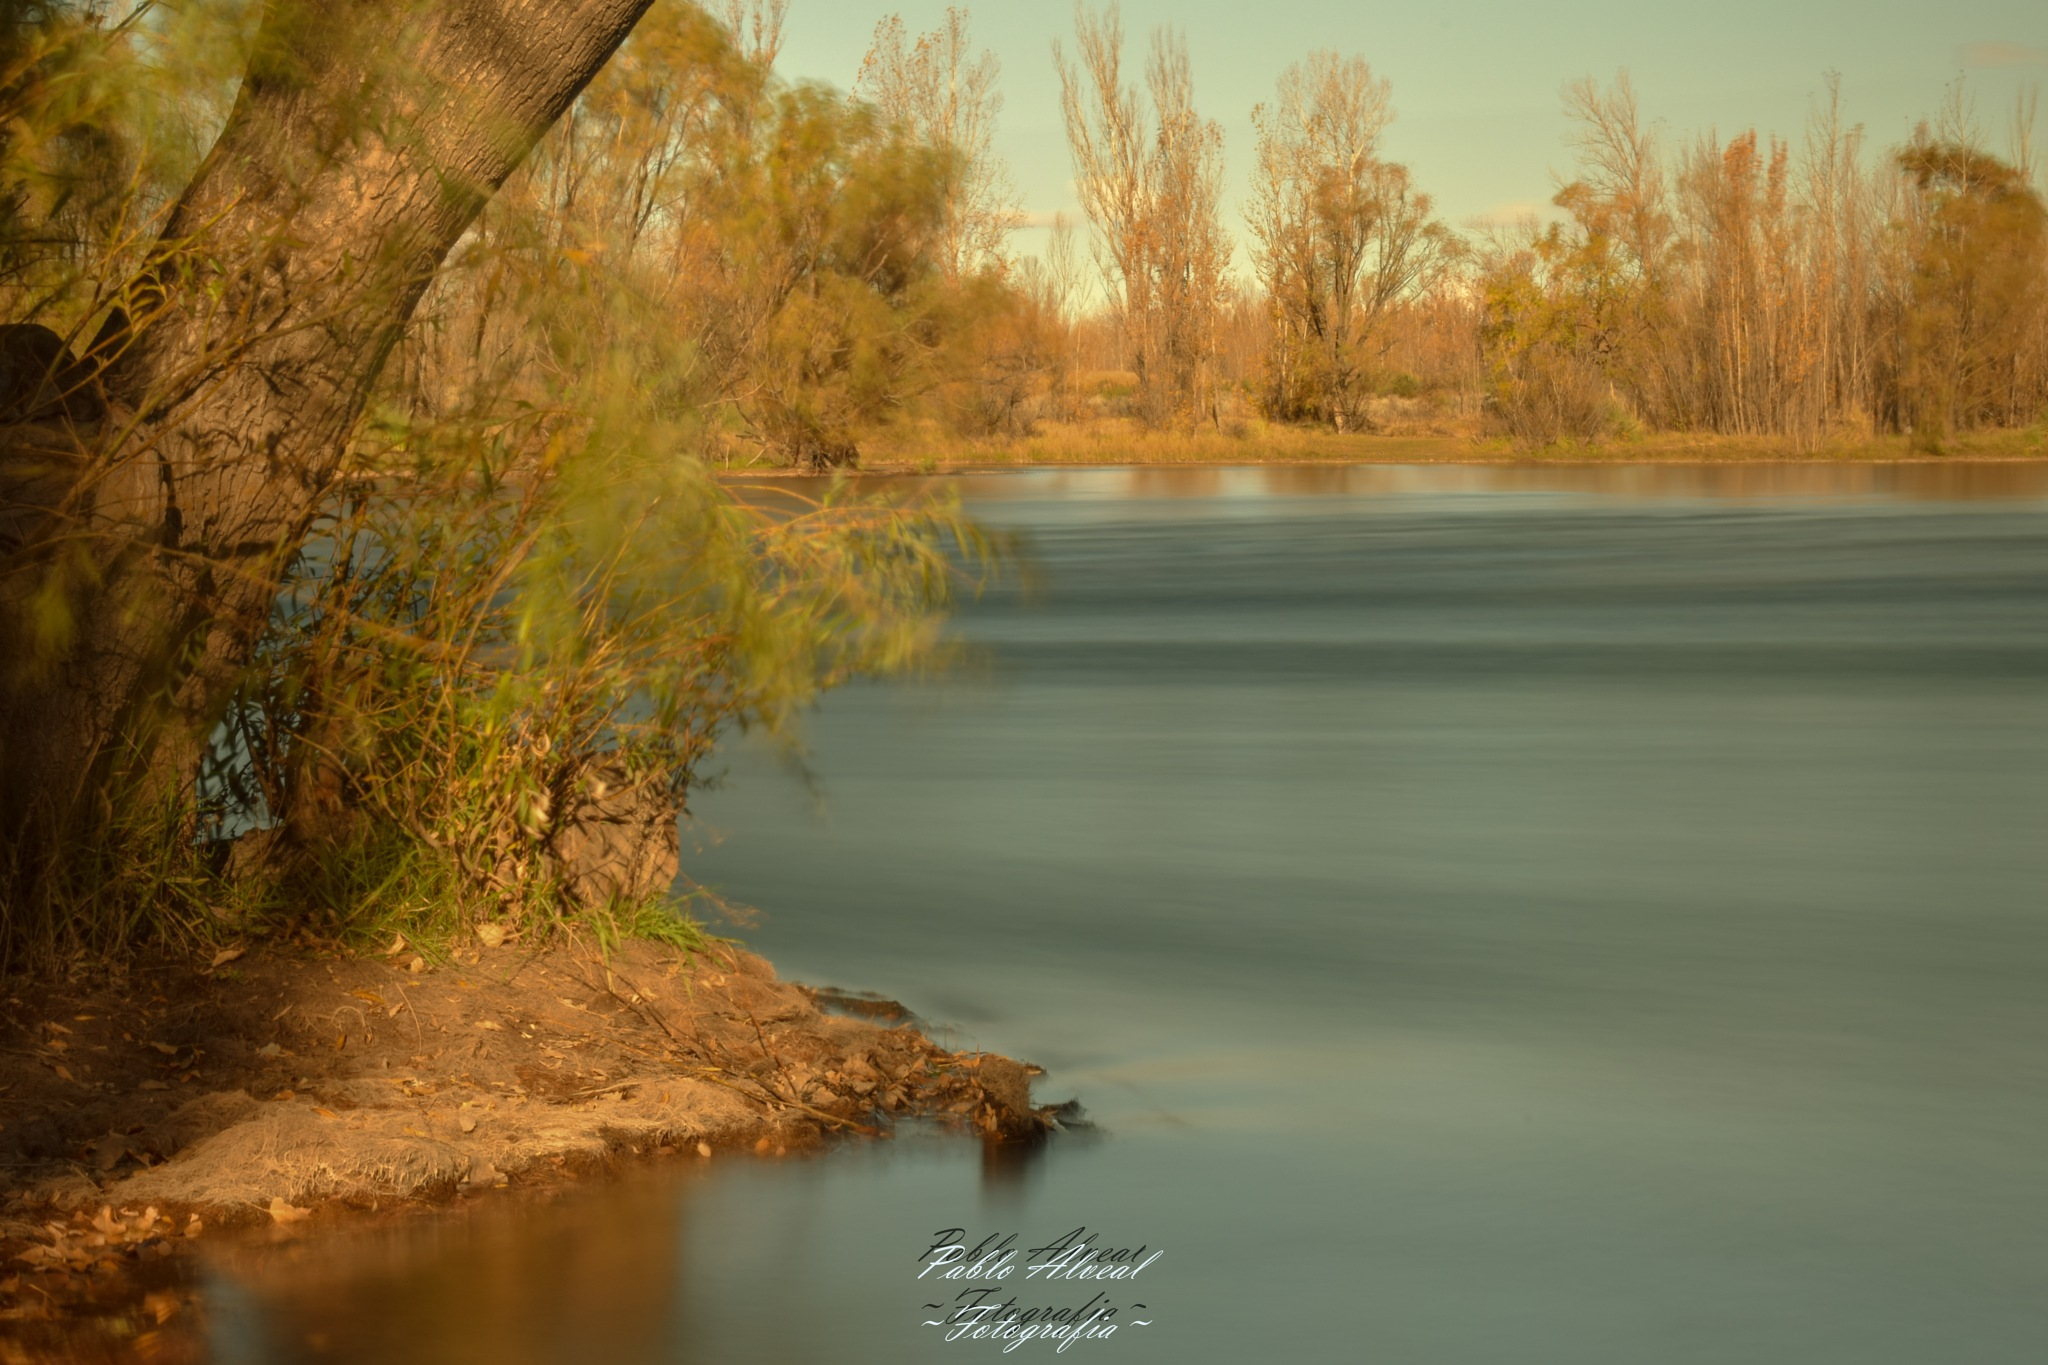 Rio Limay by Pablo Abner Isaac Alveal